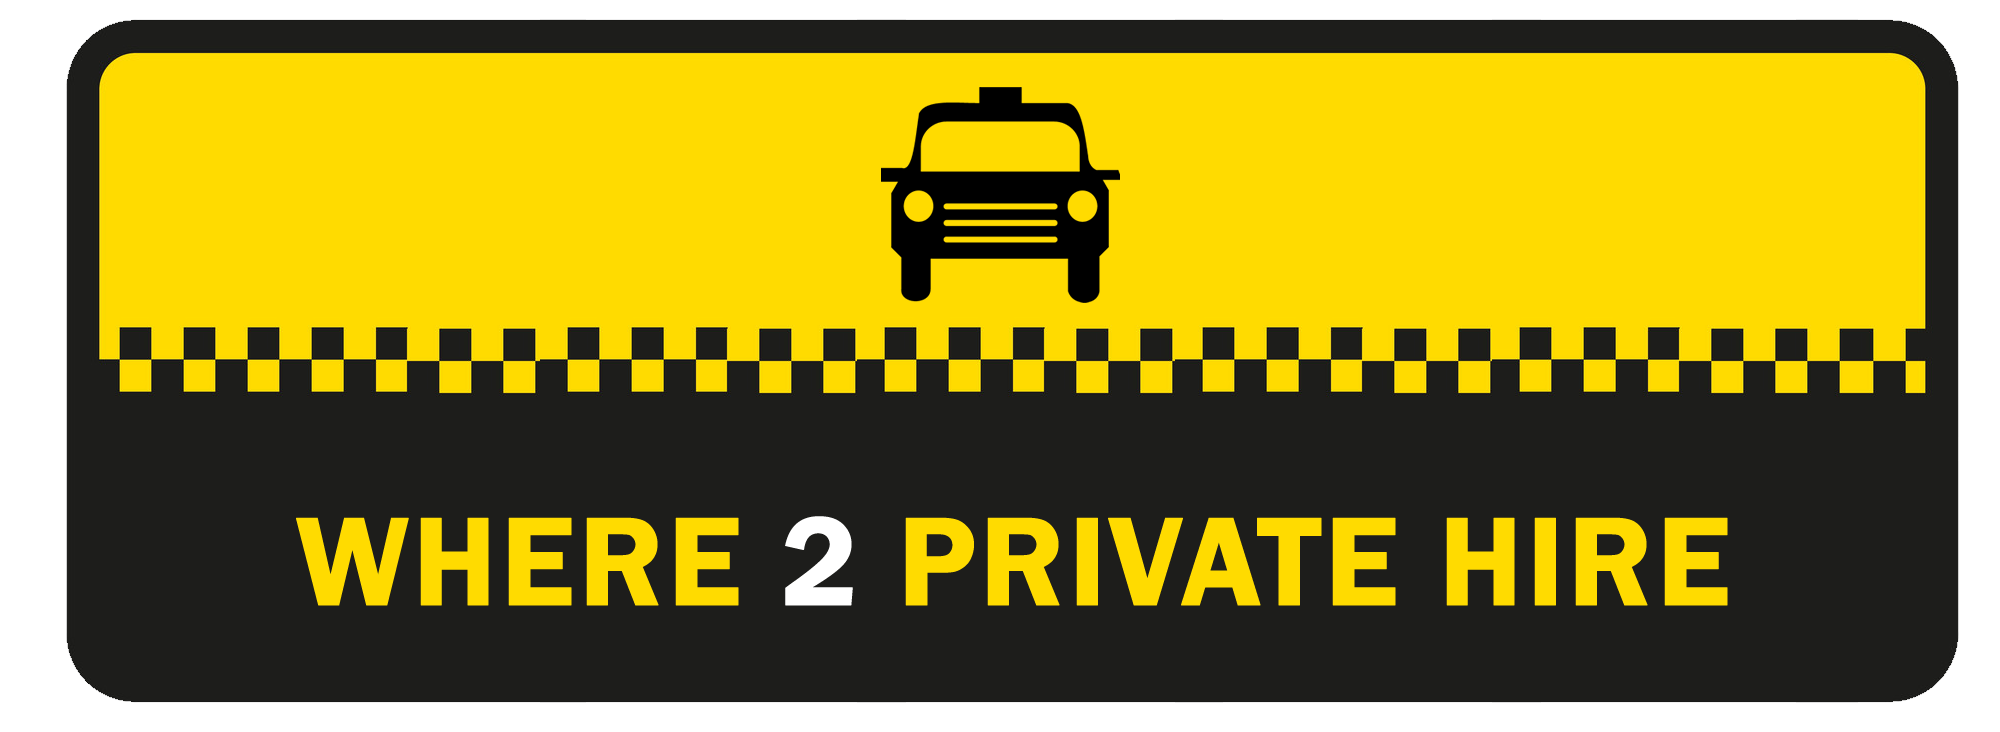 Where 2 Private Hire